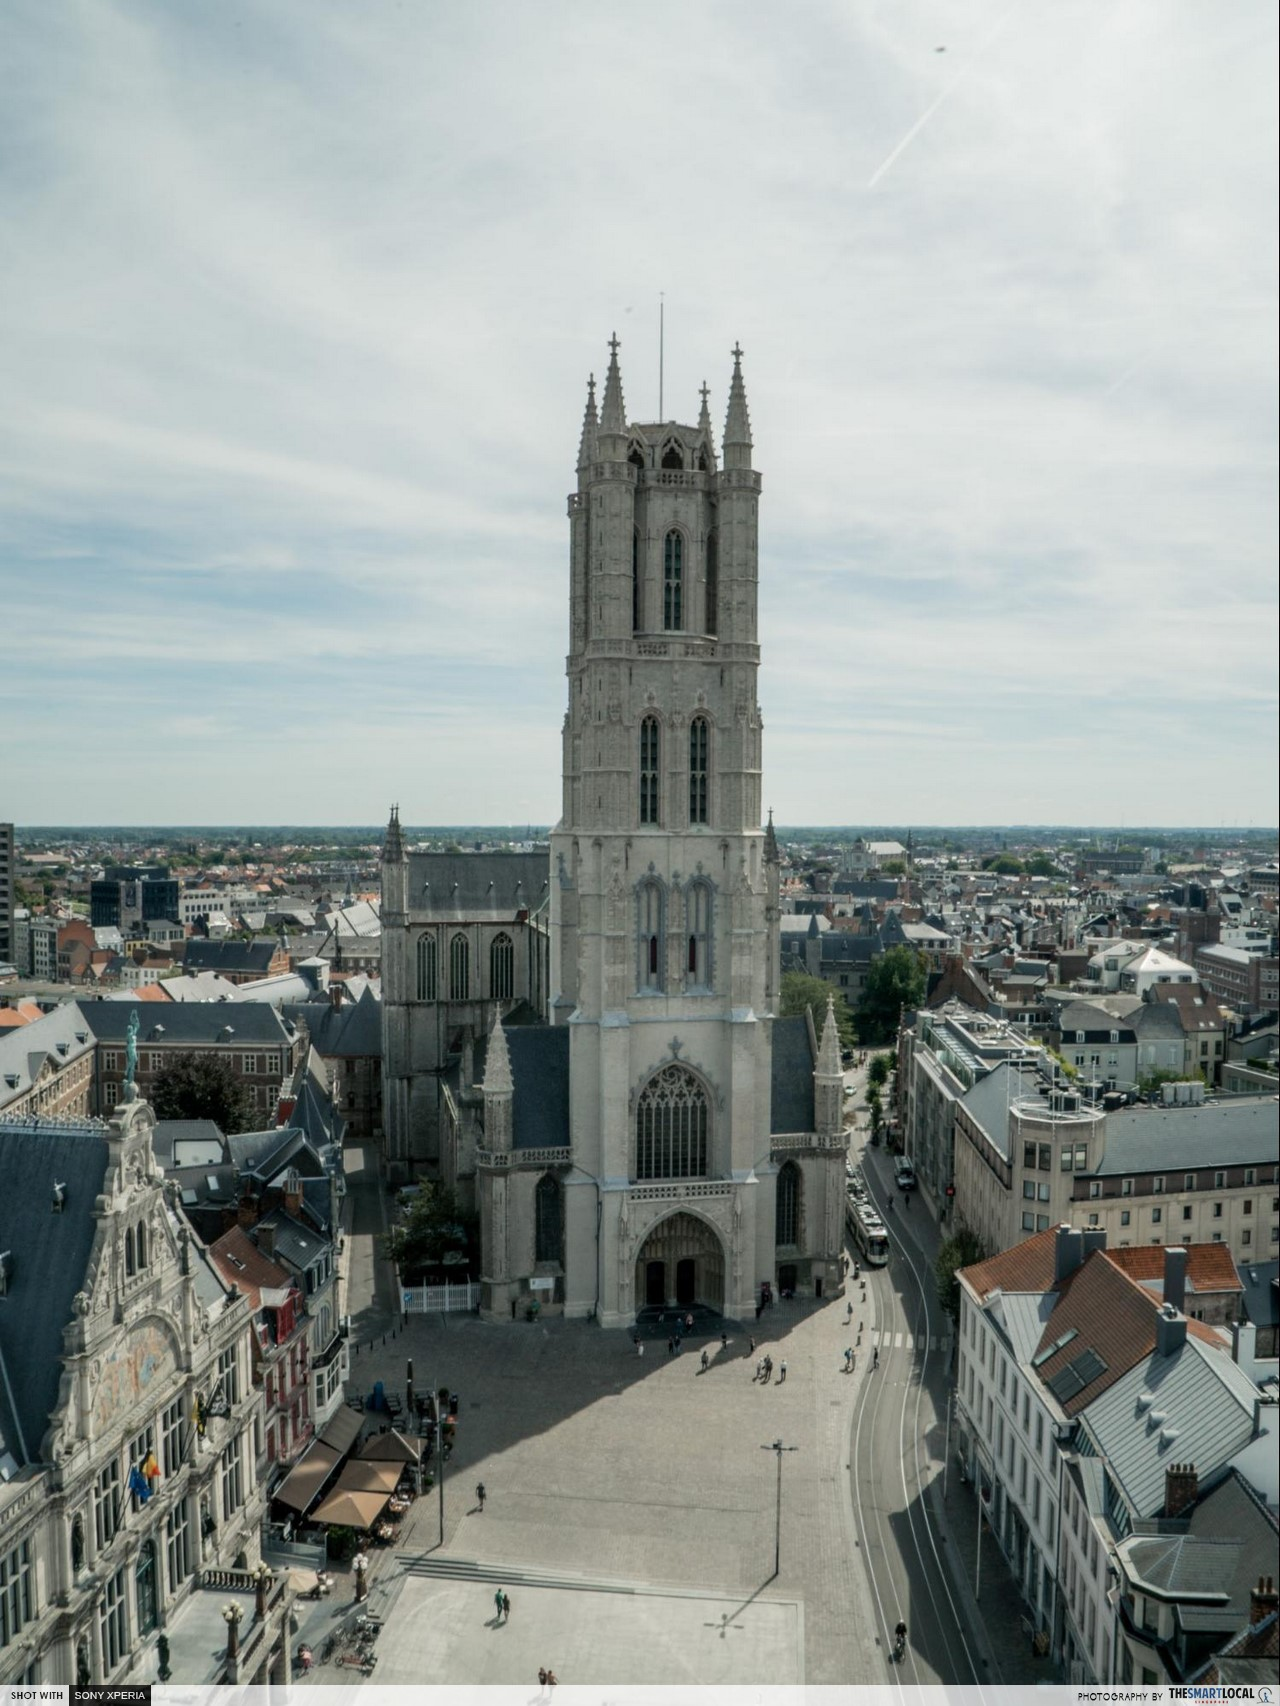 Brussels 7 things (8) - Ghent cathedral